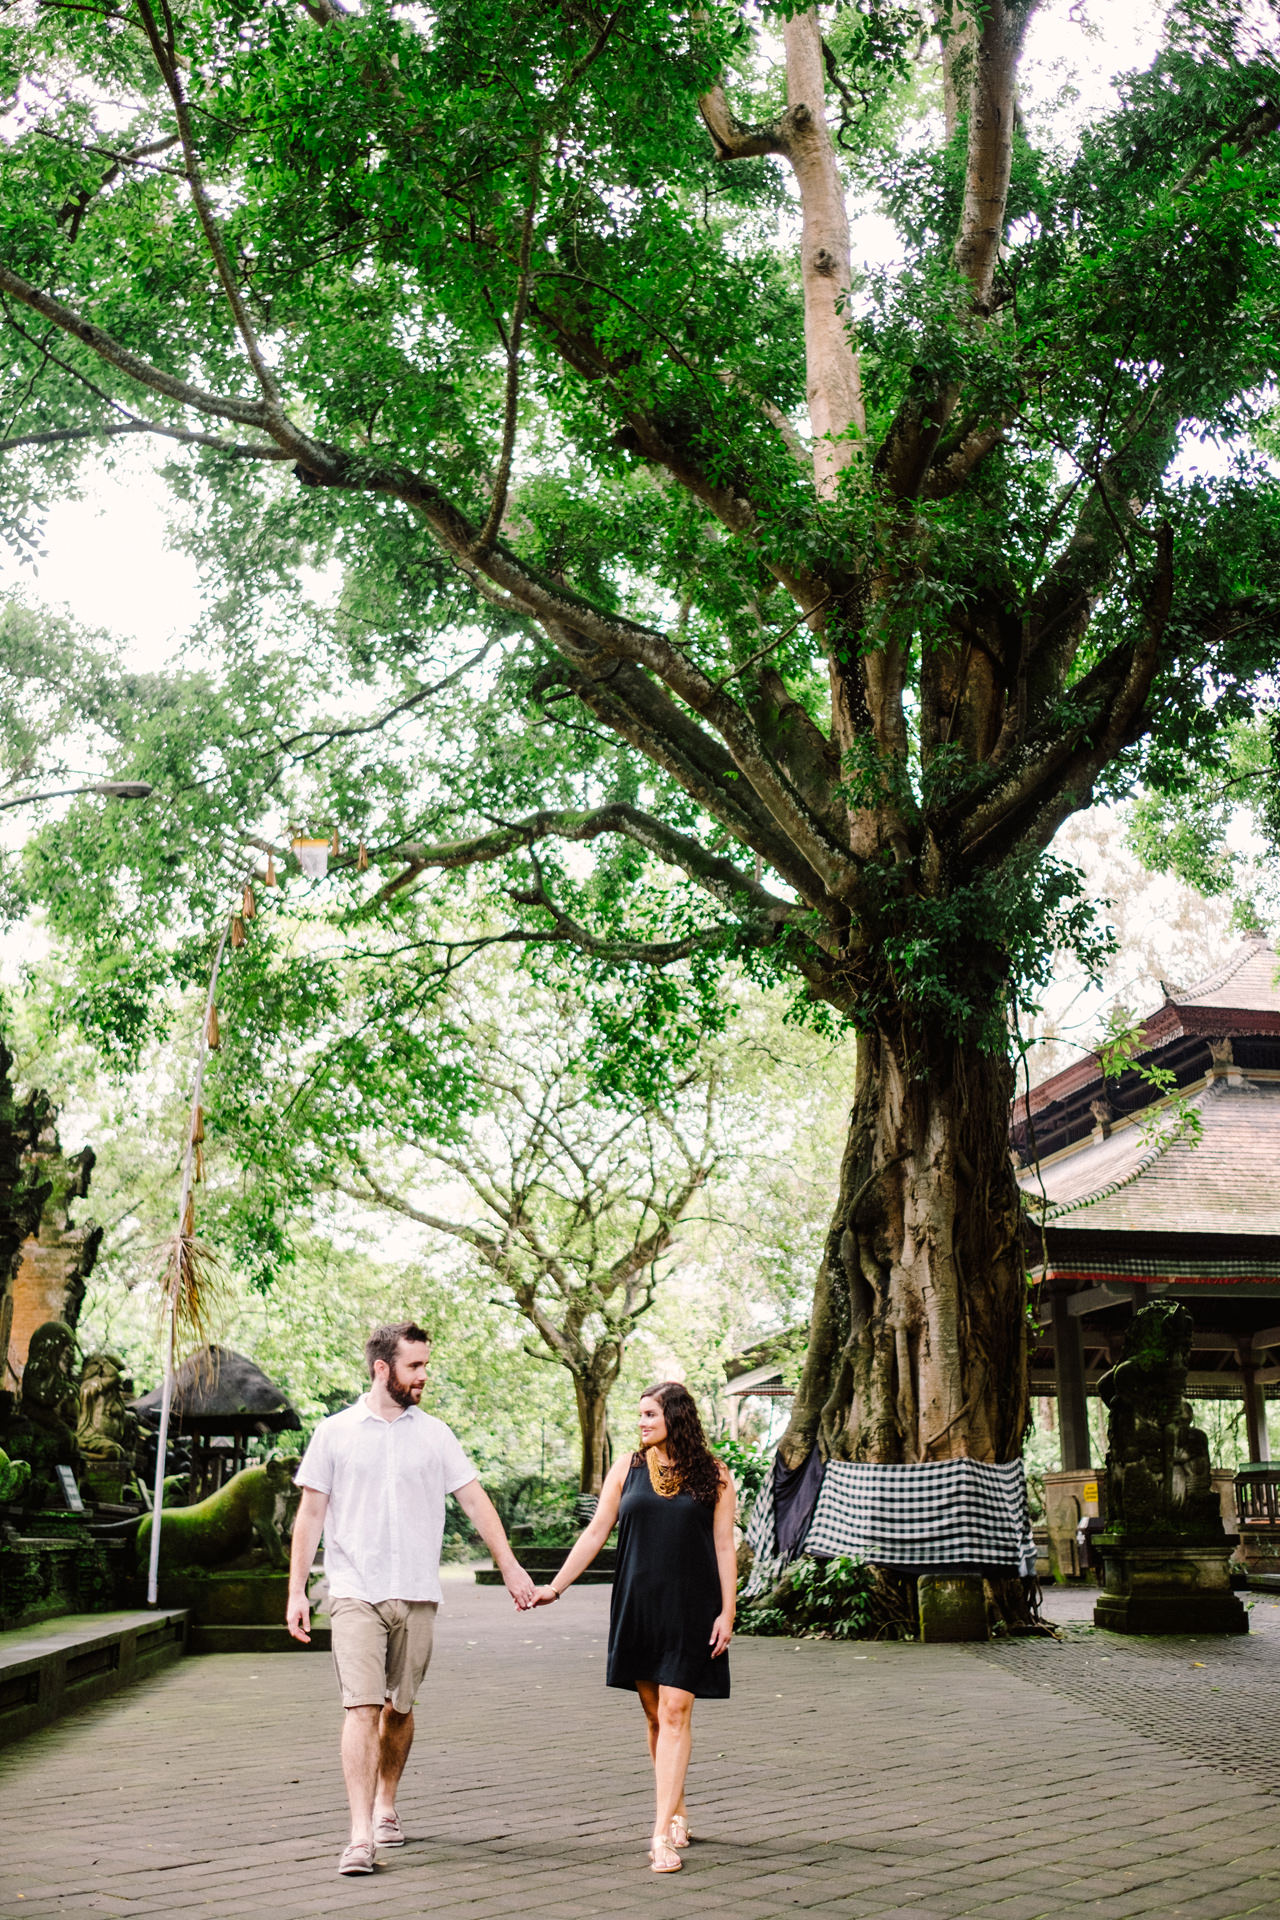 S&T: Bali Honeymoon Photography in Monkey Forest as Wedding Present 3